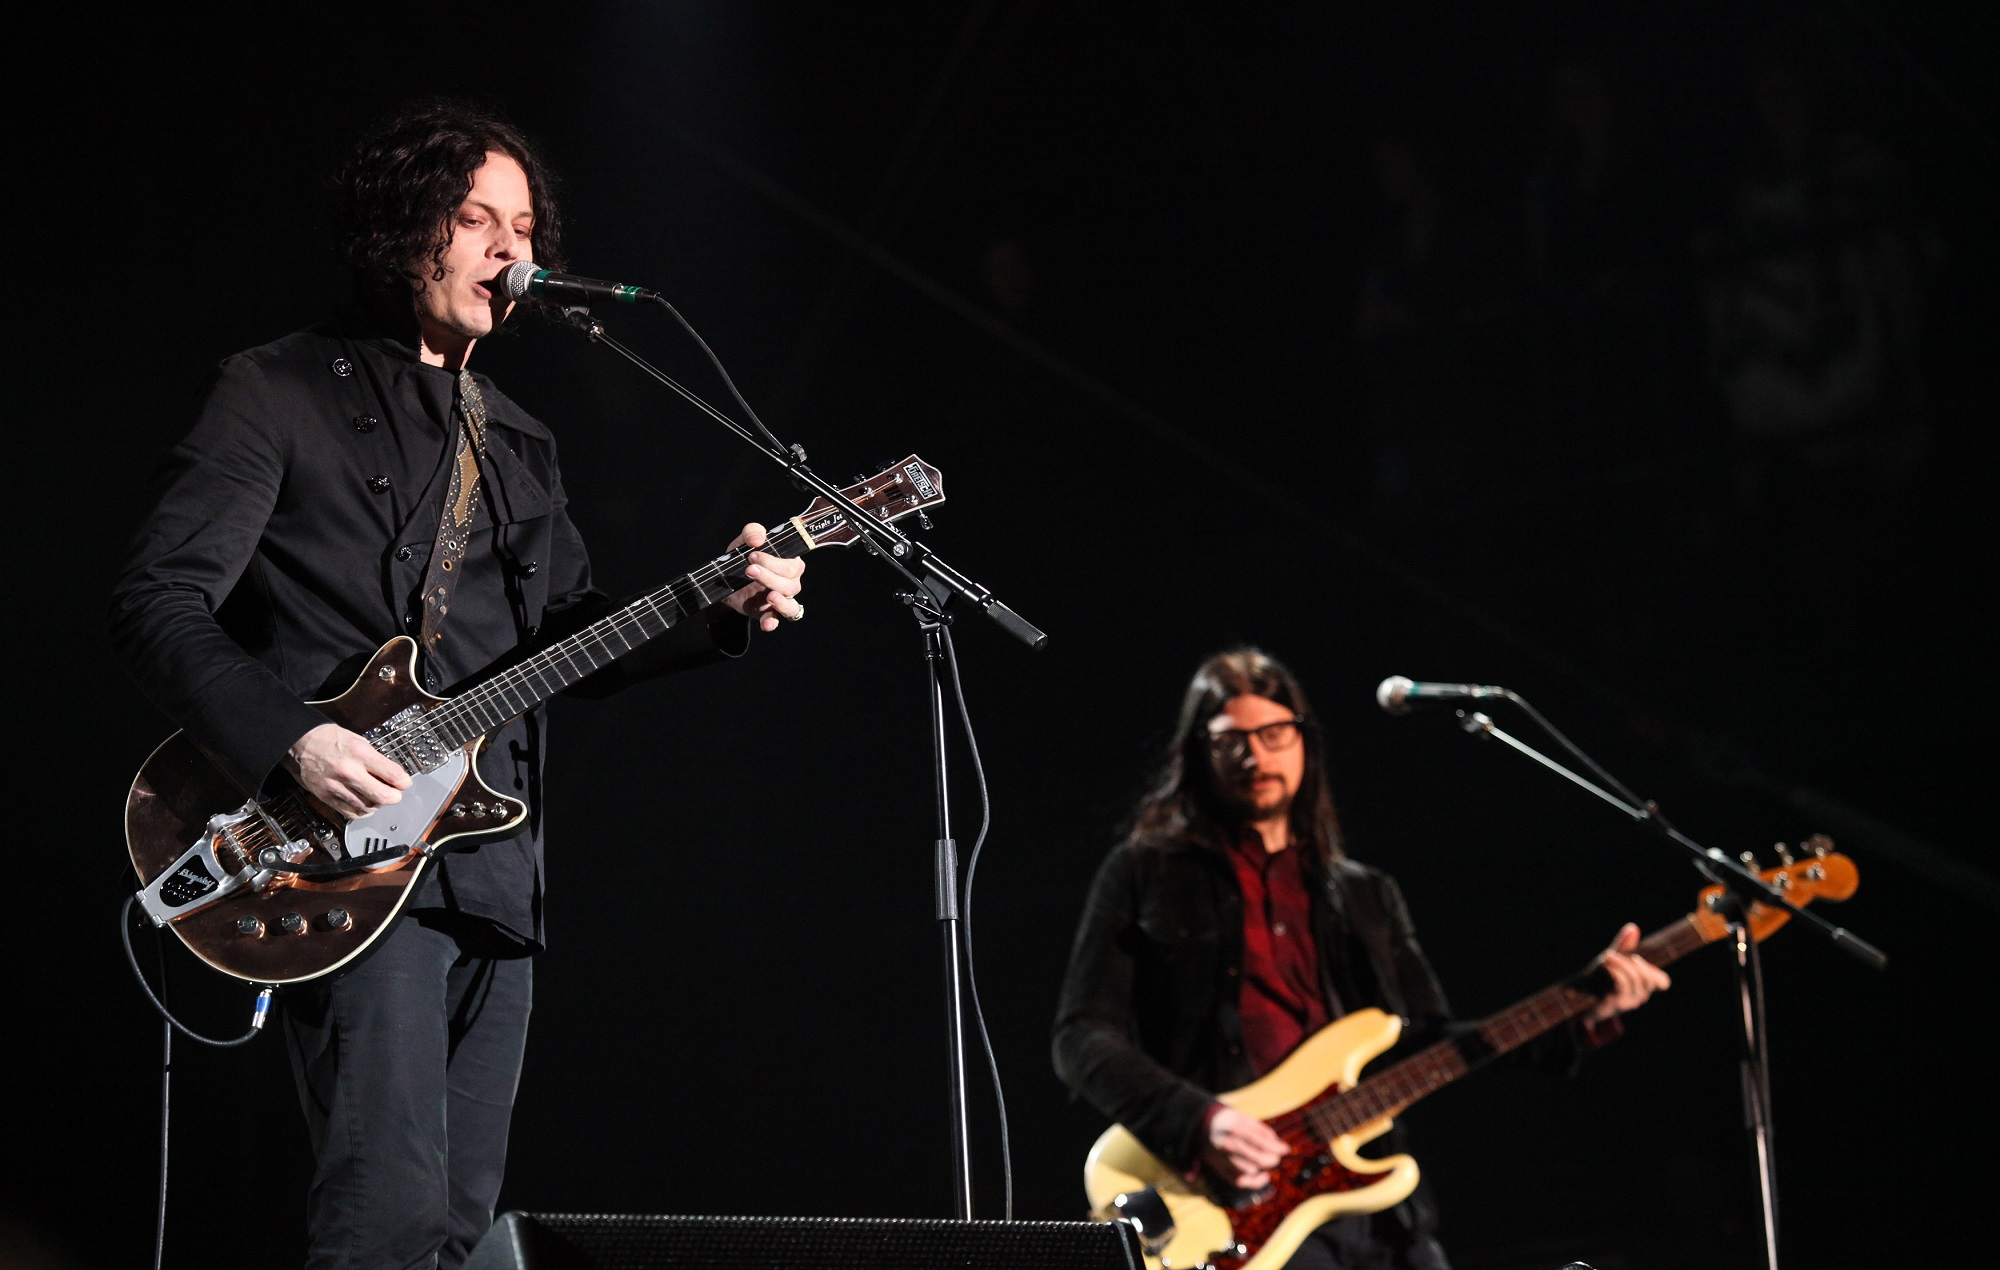 """The Raconteurs: """"We've just finished making the rock 'n' roll album you've been waiting for"""""""